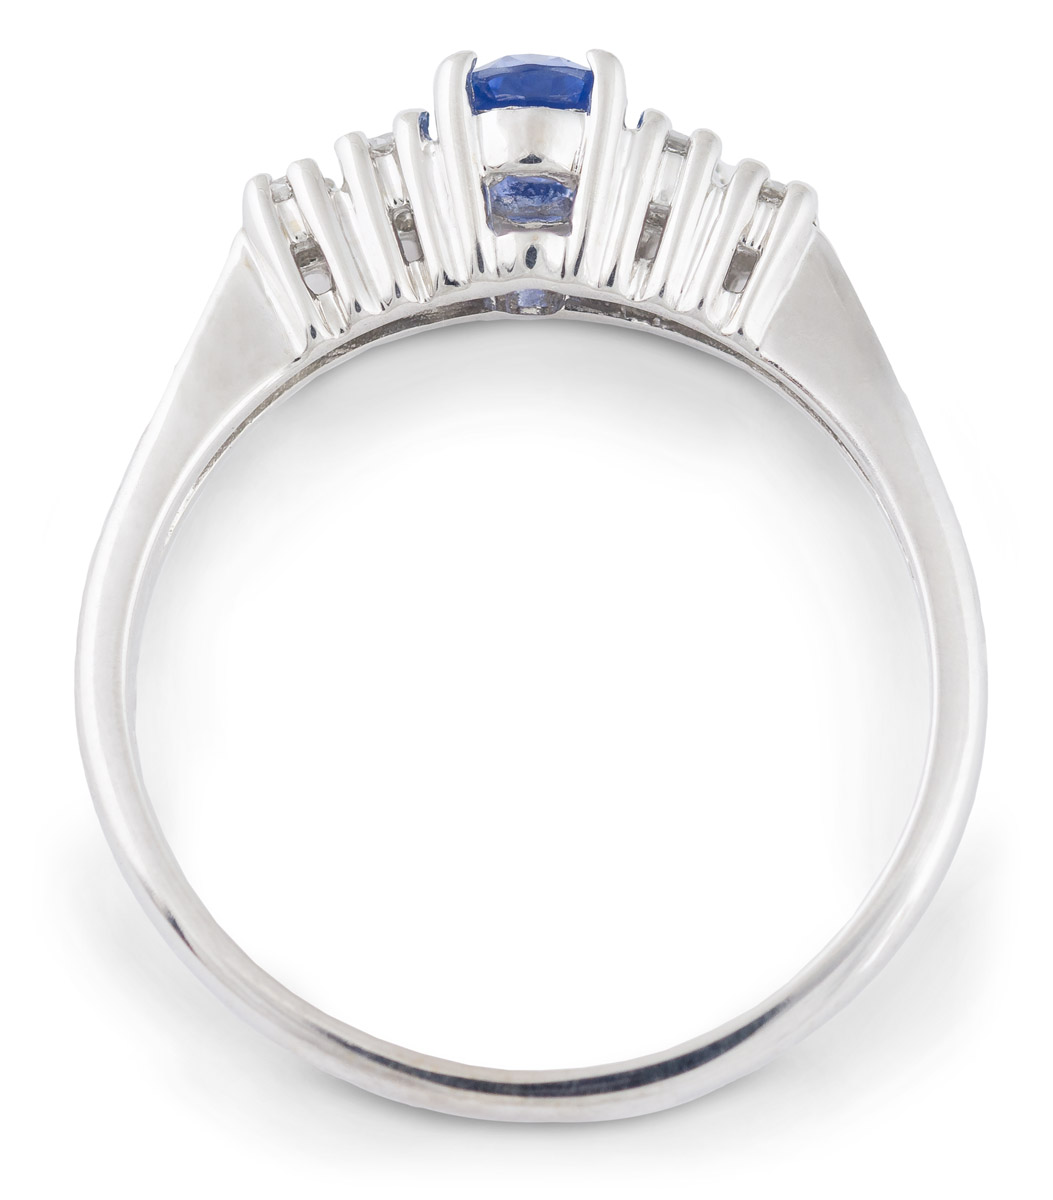 Oval Sapphire Ring with Diamond Accents - Top